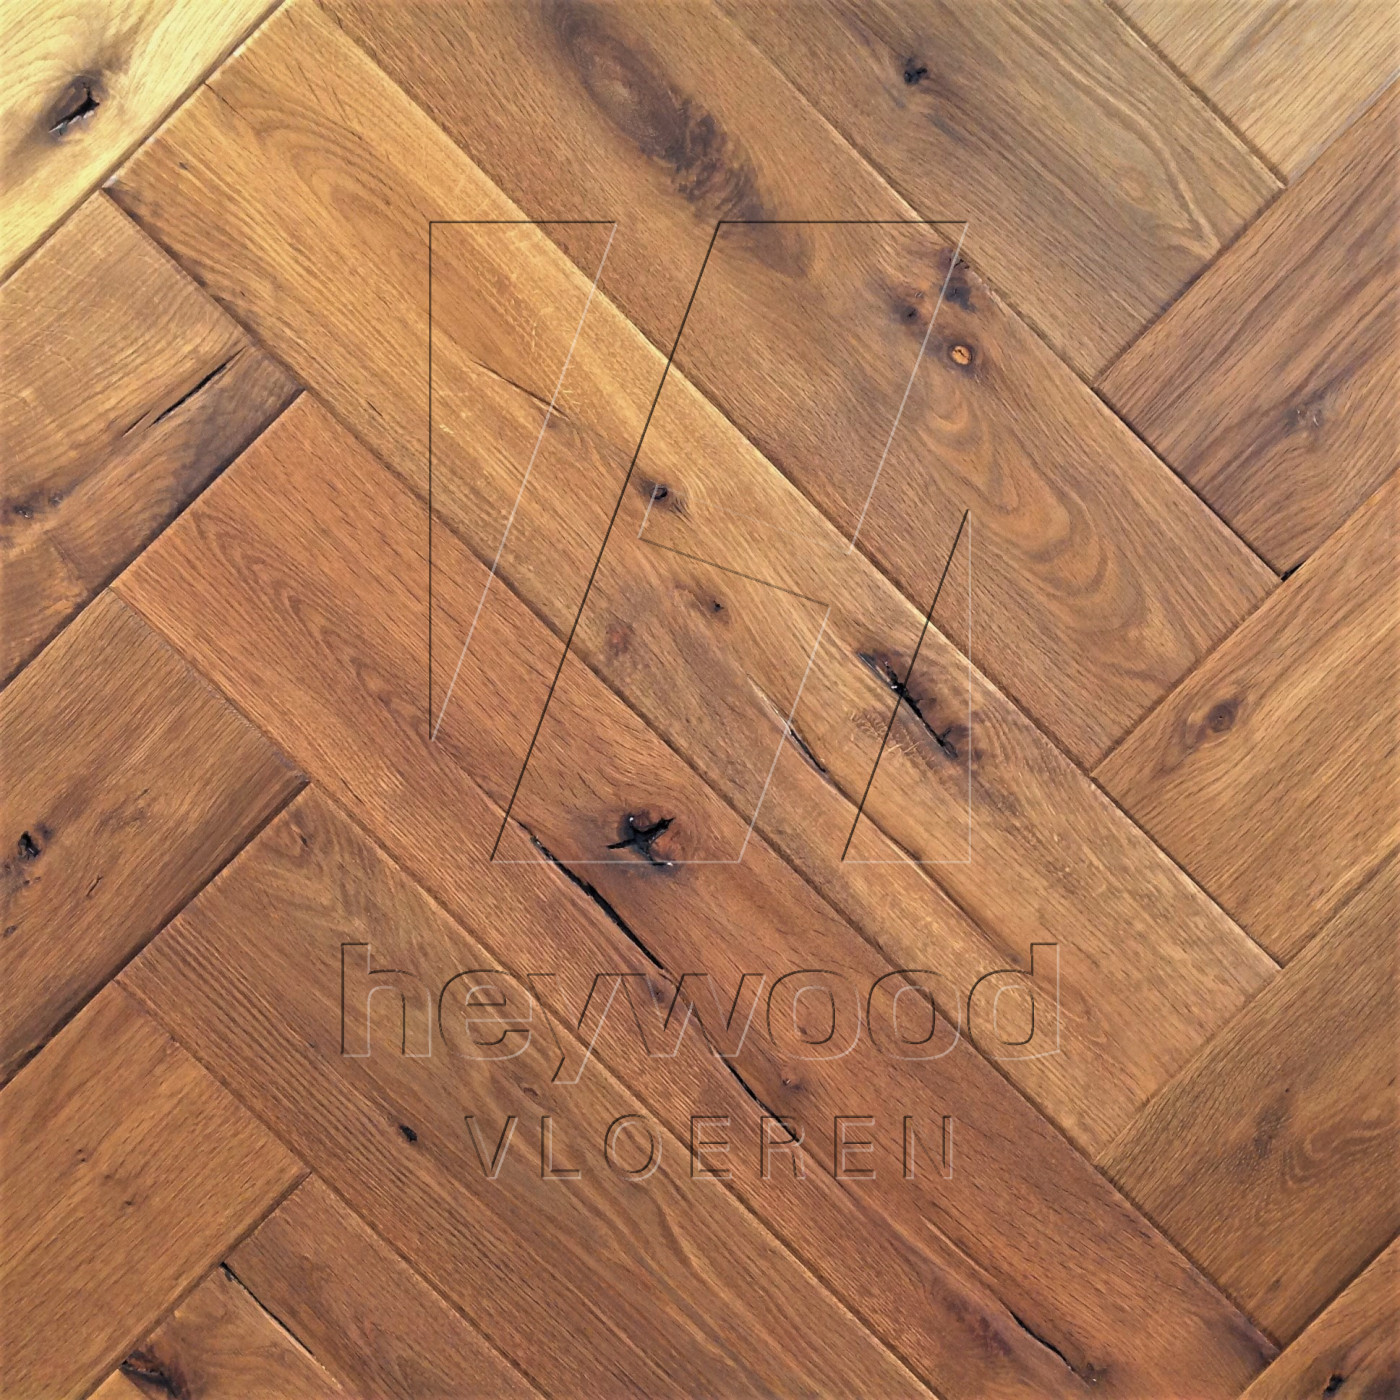 Knotting Hill Herringbone 'Kilimanjaro' in Herringbone of Pattern & Panel Floors